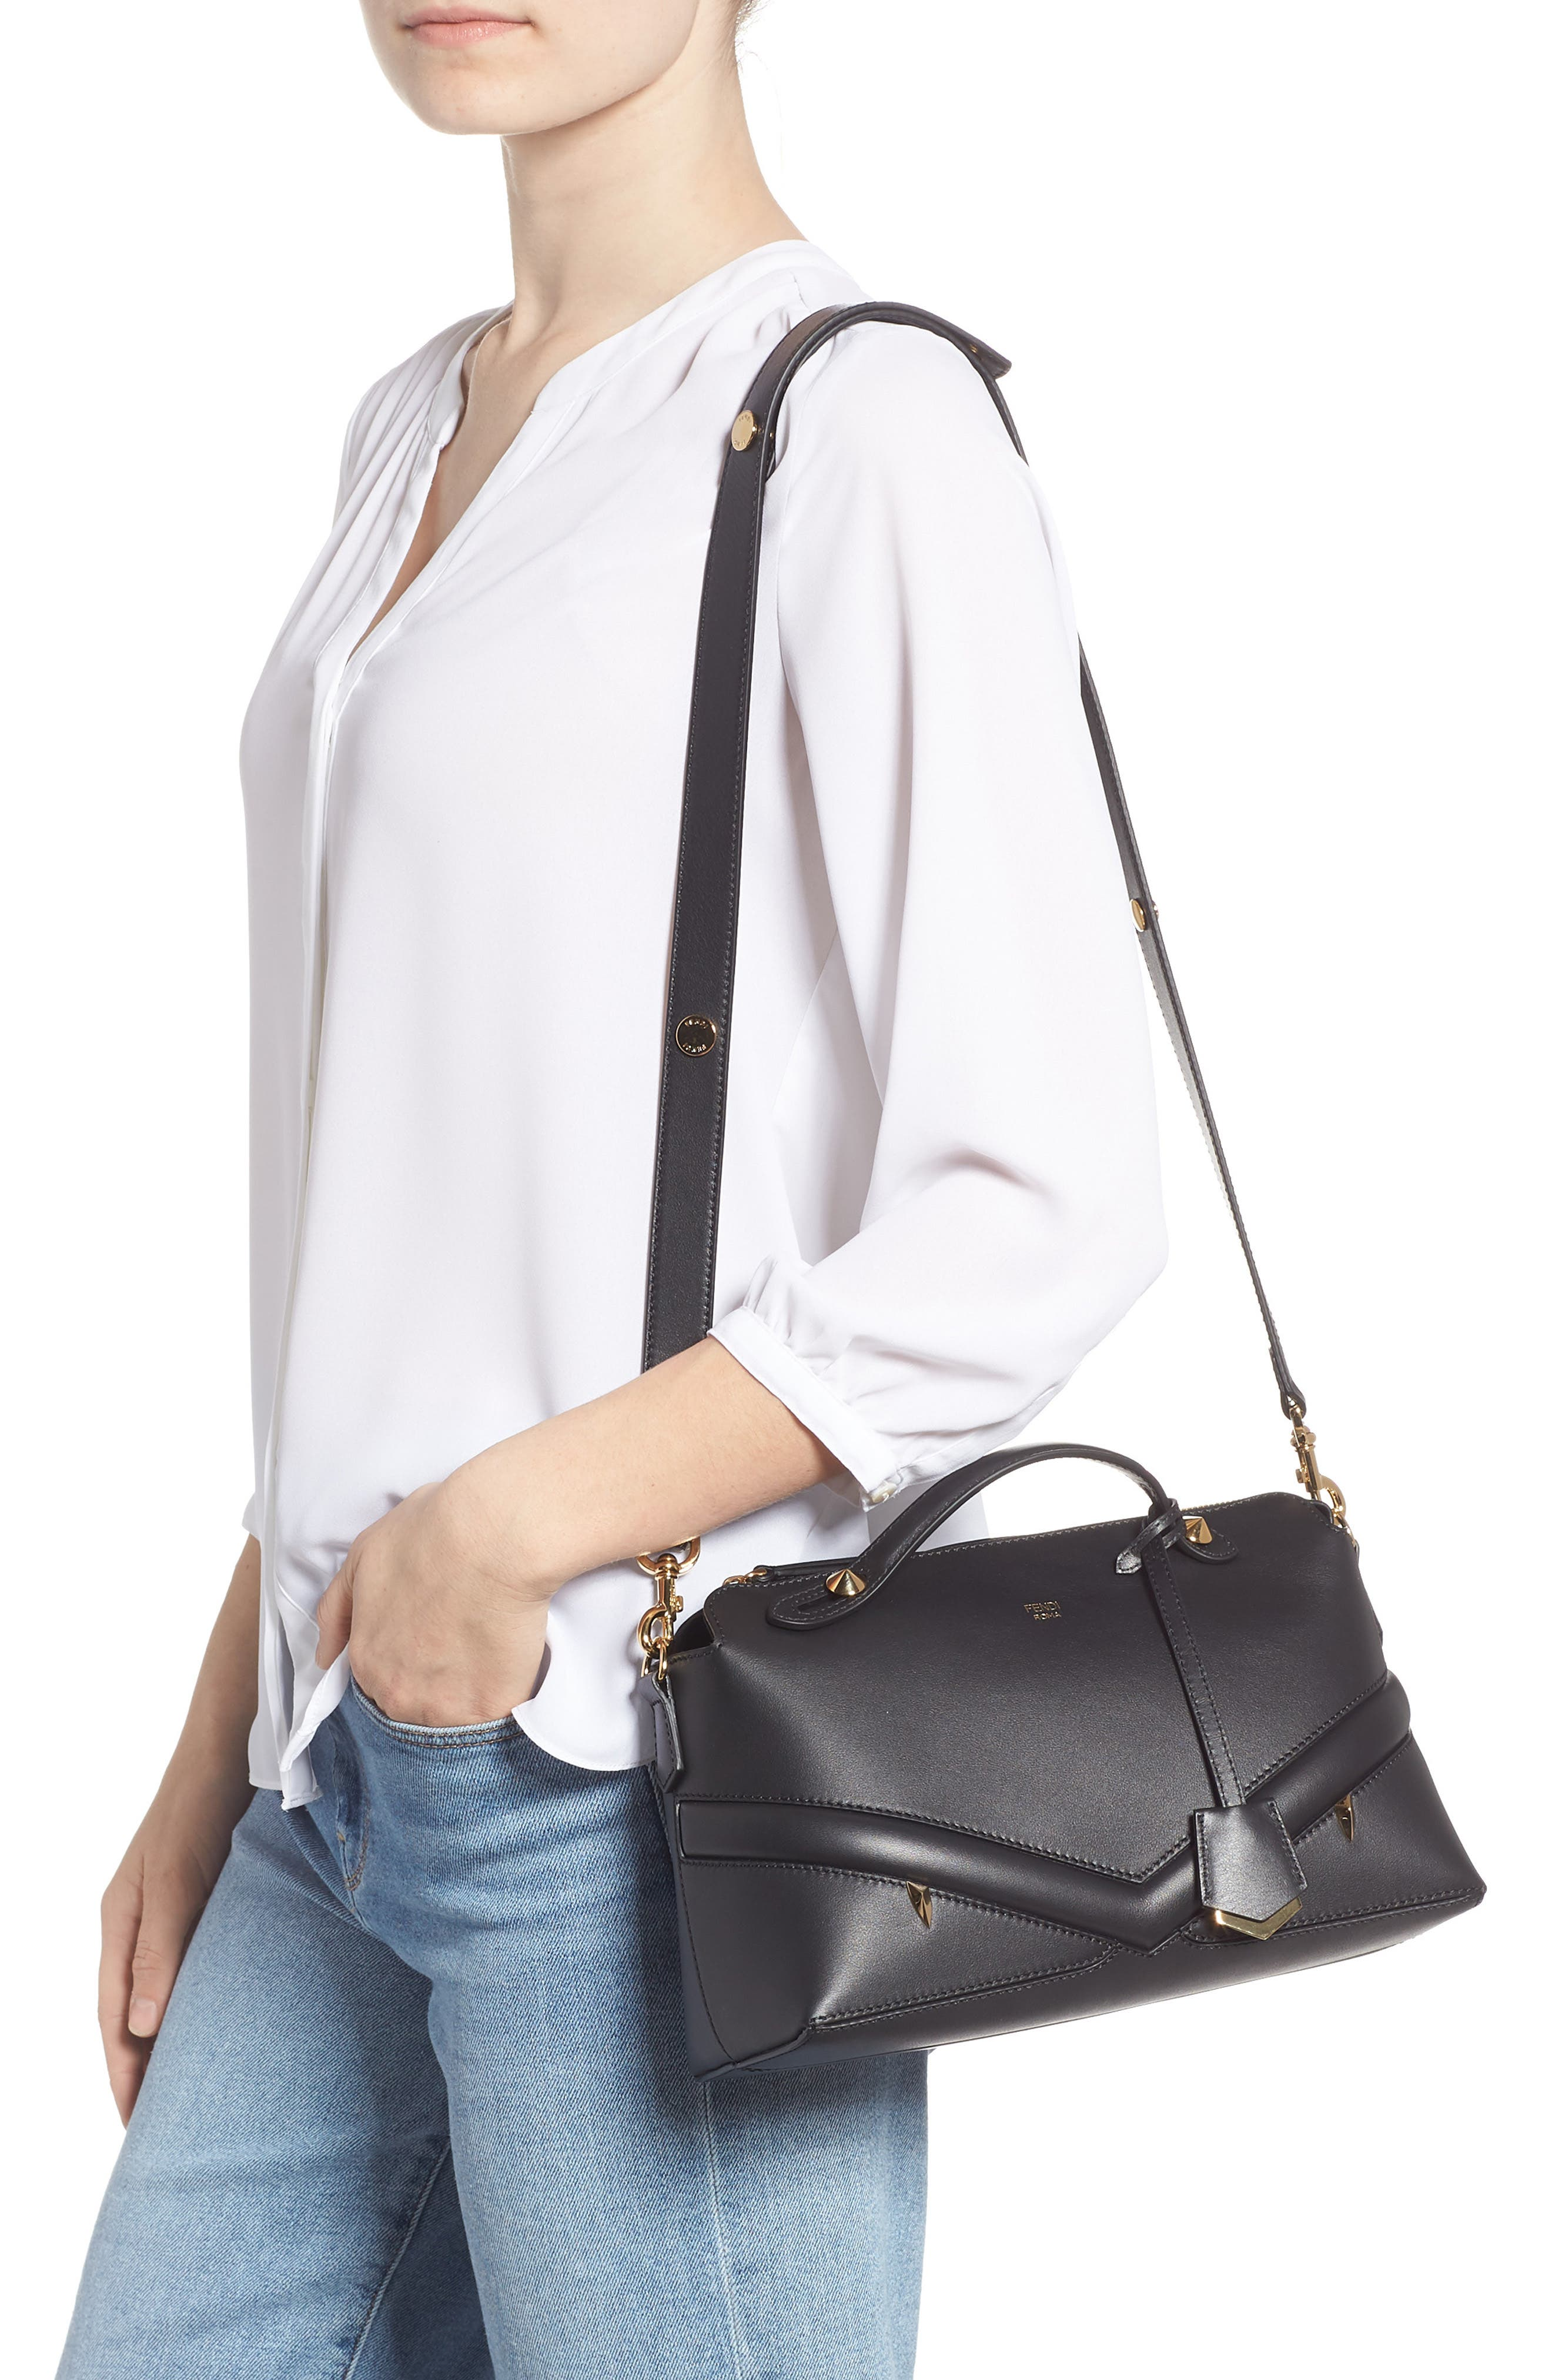 By the Way - Wonders Convertible Leather Shoulder Bag,                             Alternate thumbnail 2, color,                             NERO/ ORO SOFT